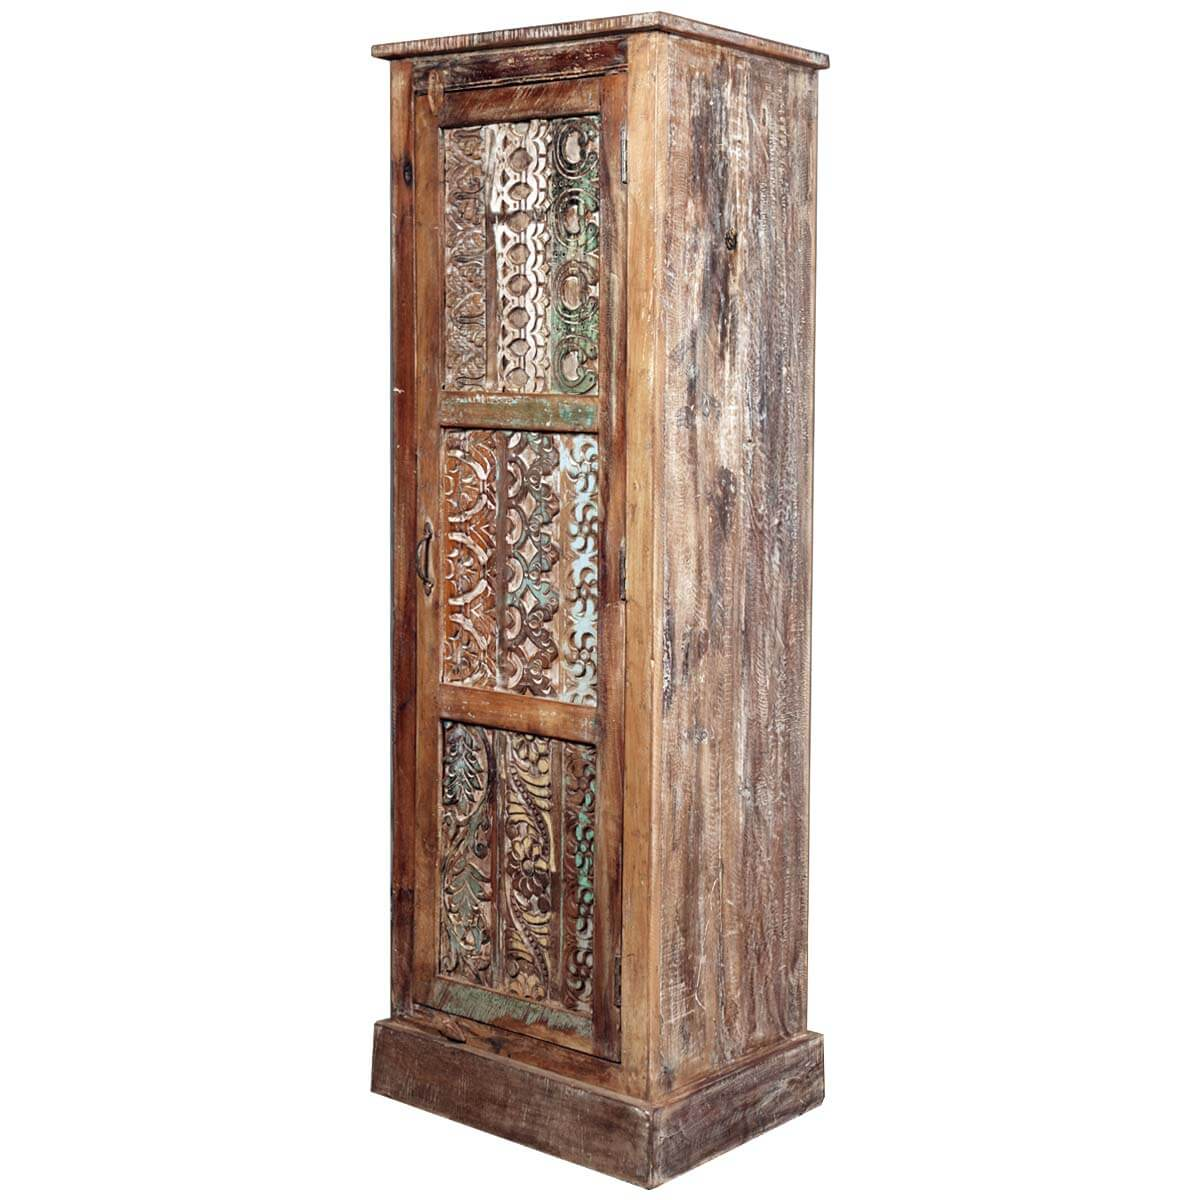 Very Impressive portraiture of Lace Front Reclaimed Wood 60 Armoire Cabinet with #AB8020 color and 1200x1200 pixels